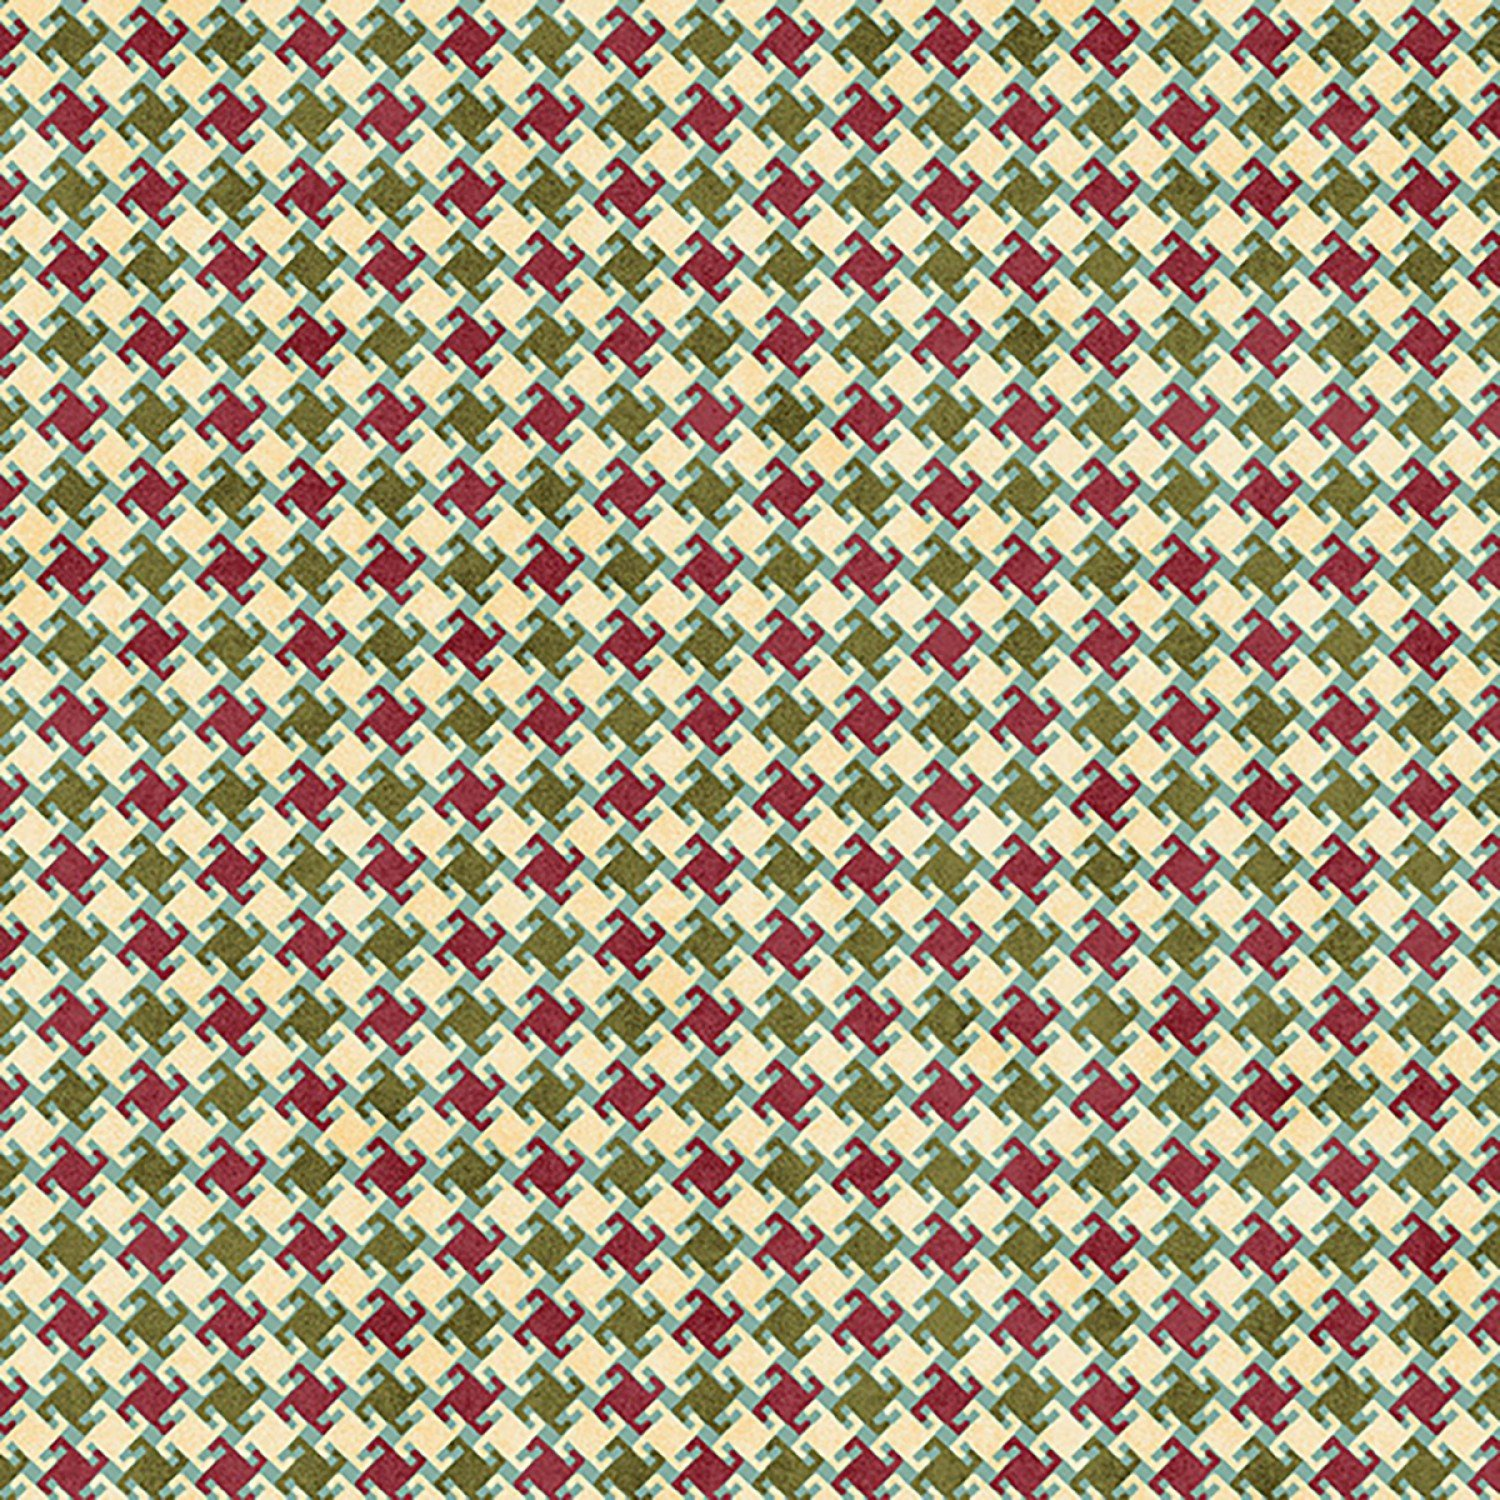 My Precious Quilt, Red/Green Houndstooth